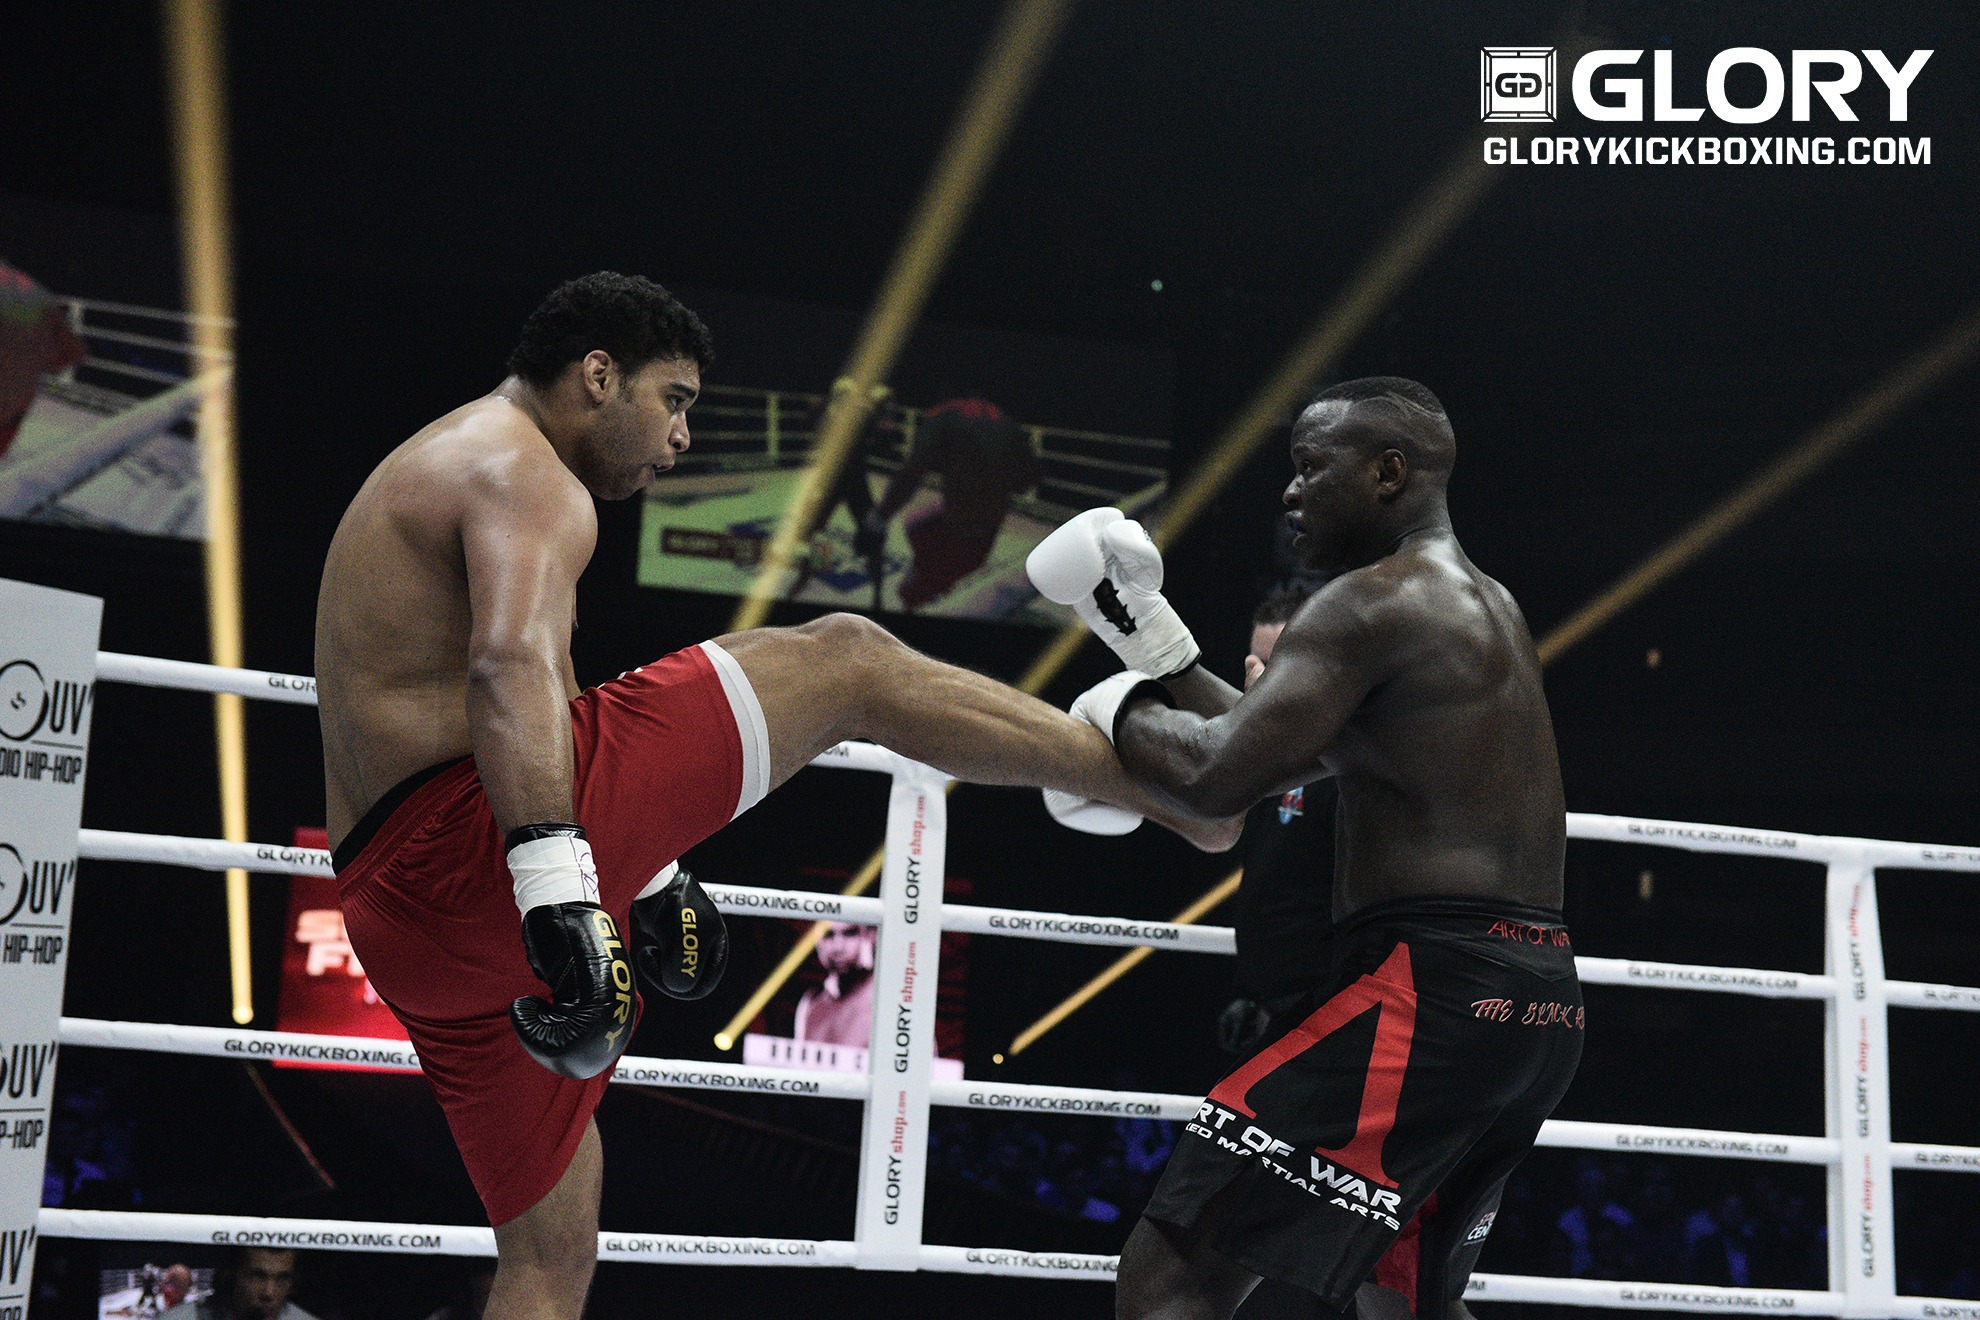 Chaves wins in GLORY debut, topping Sene after doctor's stoppage